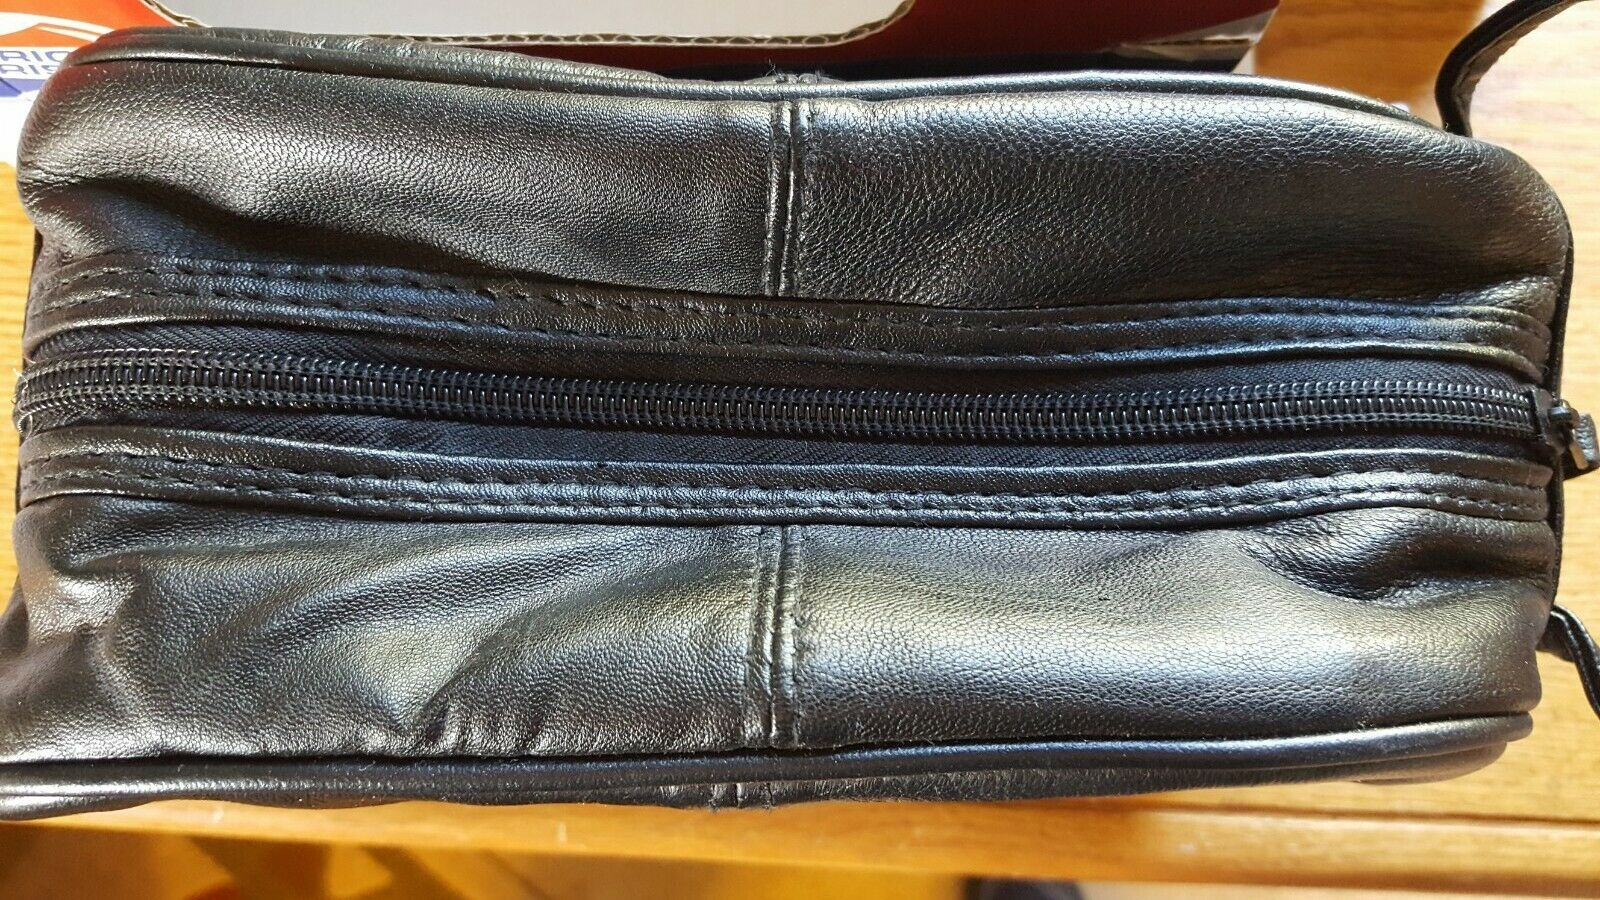 American Tourister Leather Toiletry Bag Black Cosmetic/Shaving Soft Travel Case - $10.24